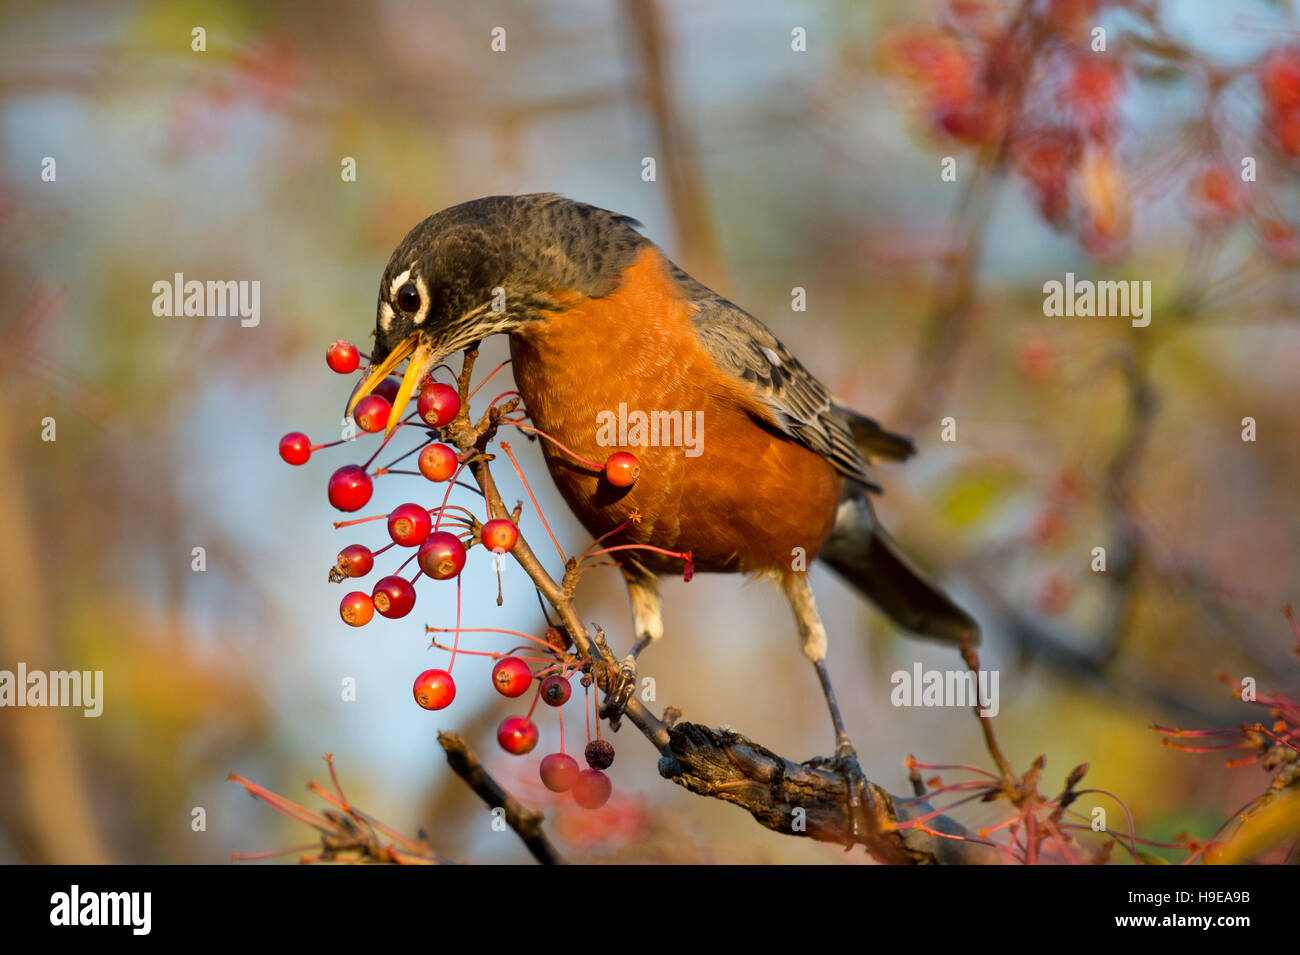 An American Robin stretches to reach a bright red berry on a branch in the morning sun. - Stock Image